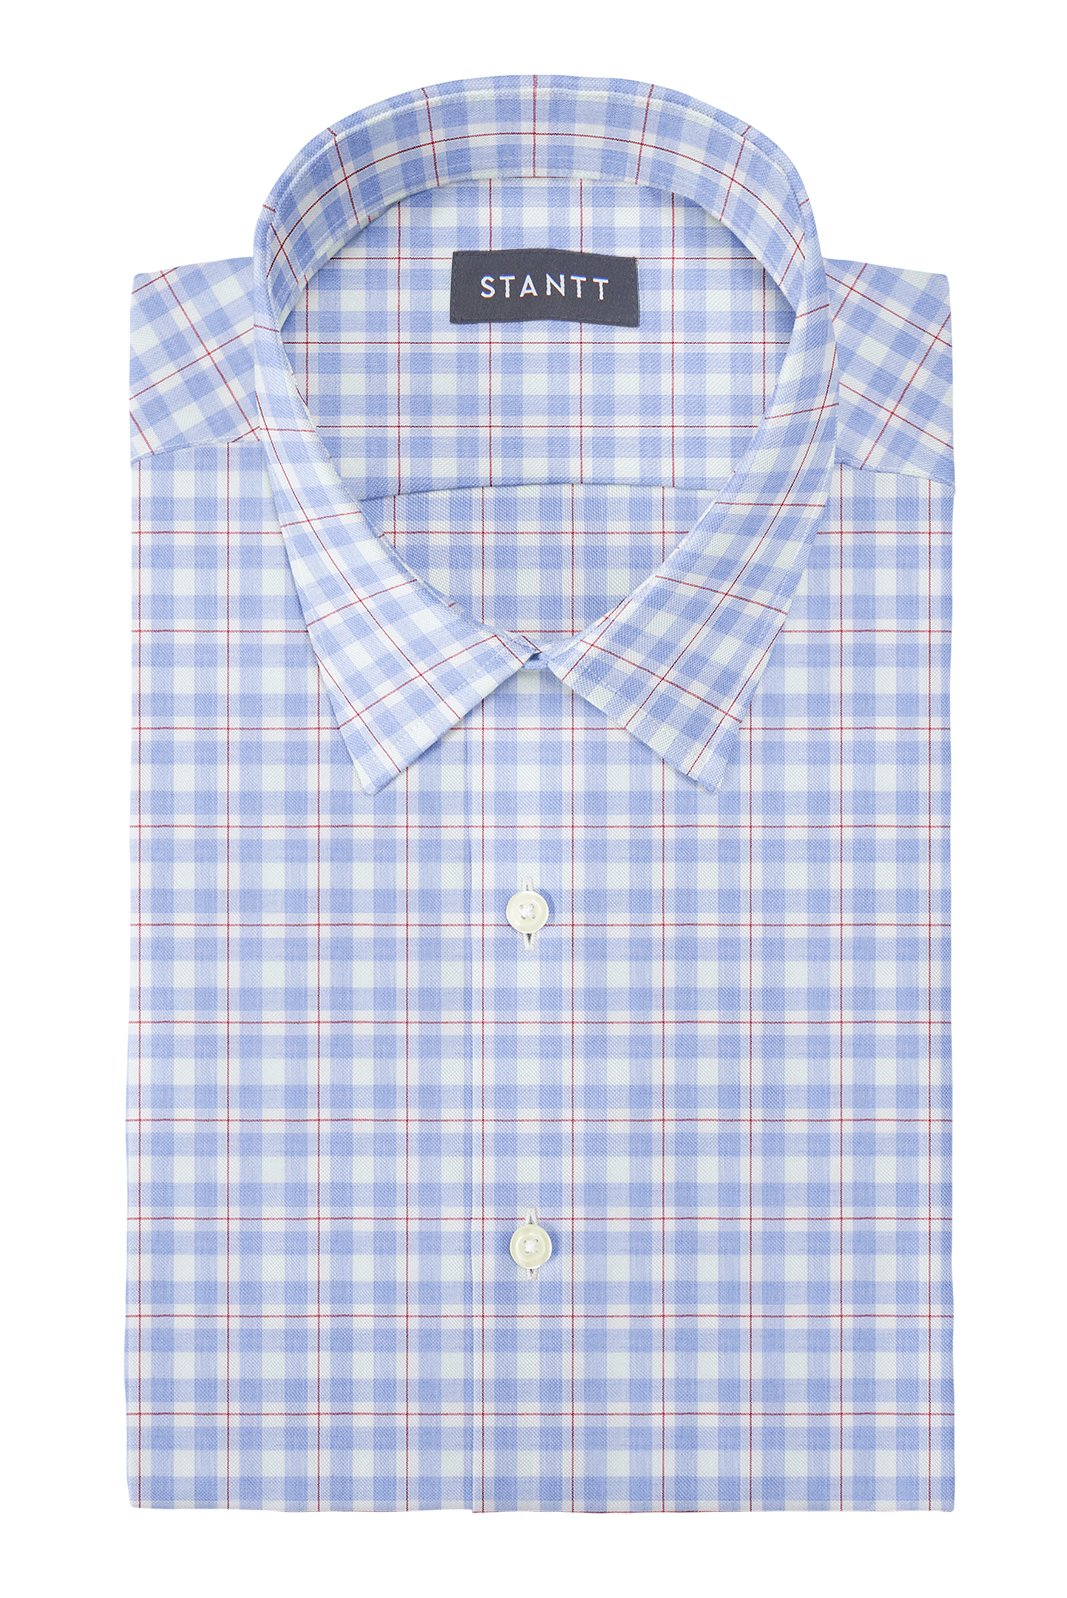 Light Blue and Red Windowpane: Semi-Spread Collar, Barrel Cuff